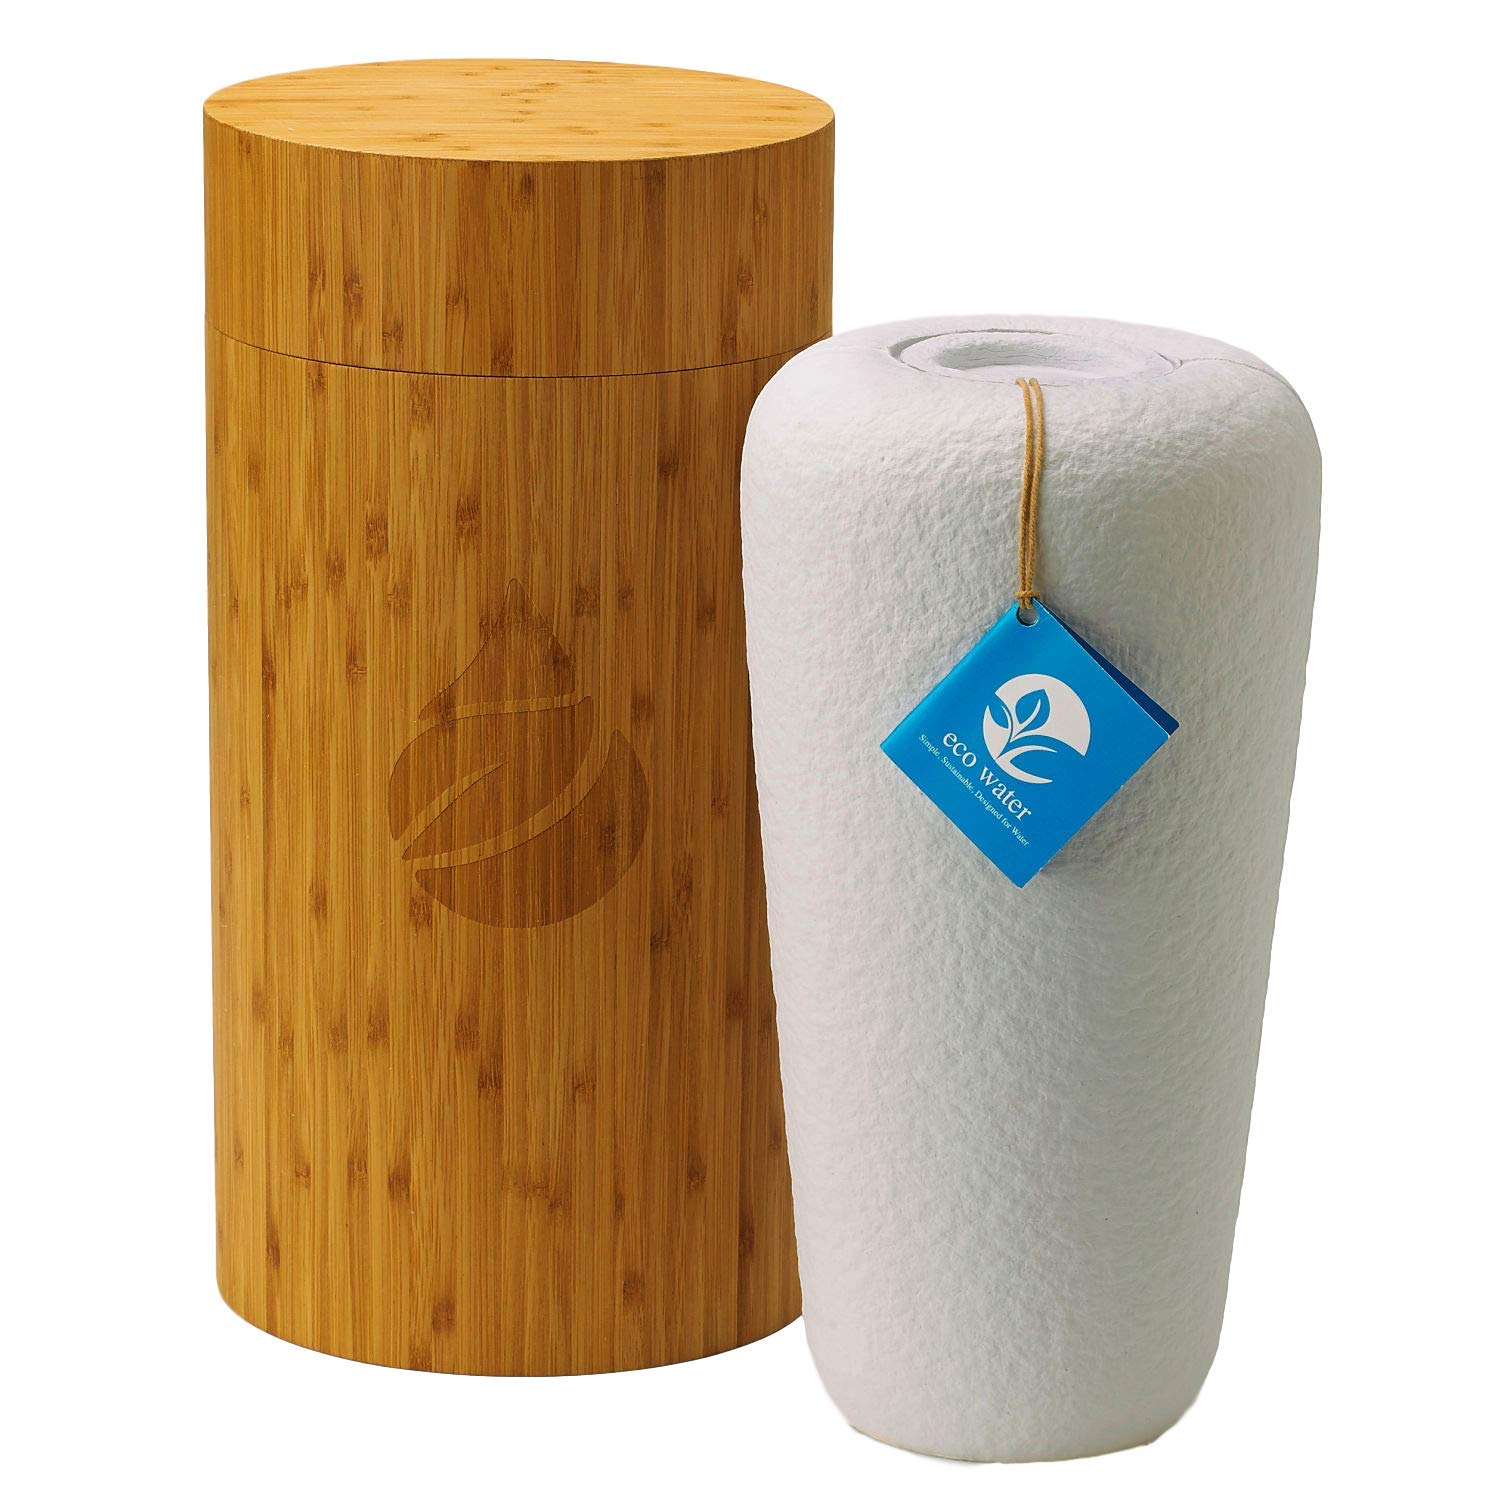 Eco Water Urn: Biodegradable Urn for Water Burial